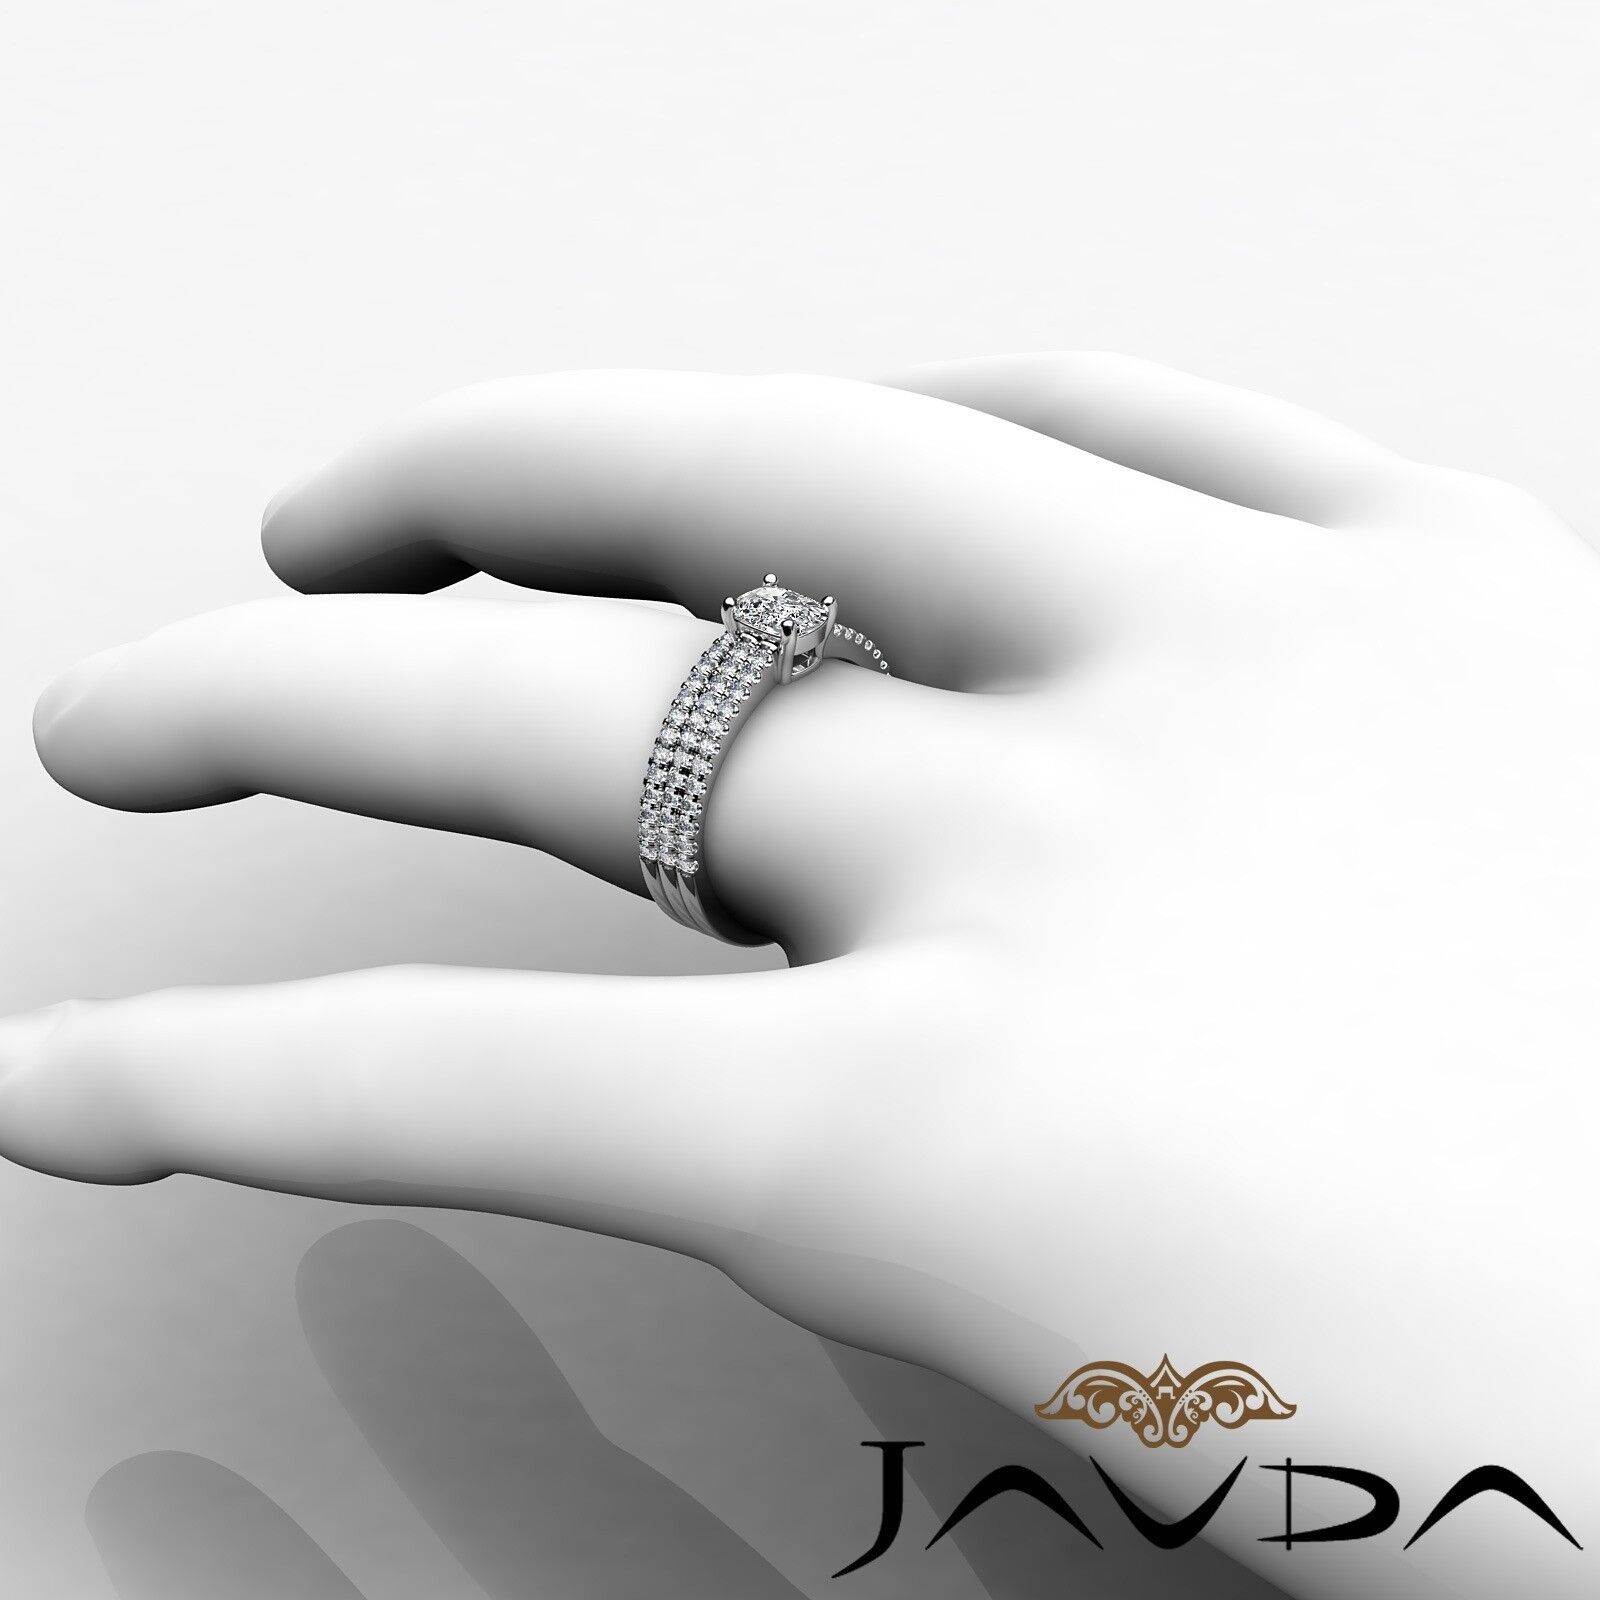 1.54ctw Bridal Scalloped Pave Cushion Diamond Engagement Ring GIA G-SI1 W Gold 5